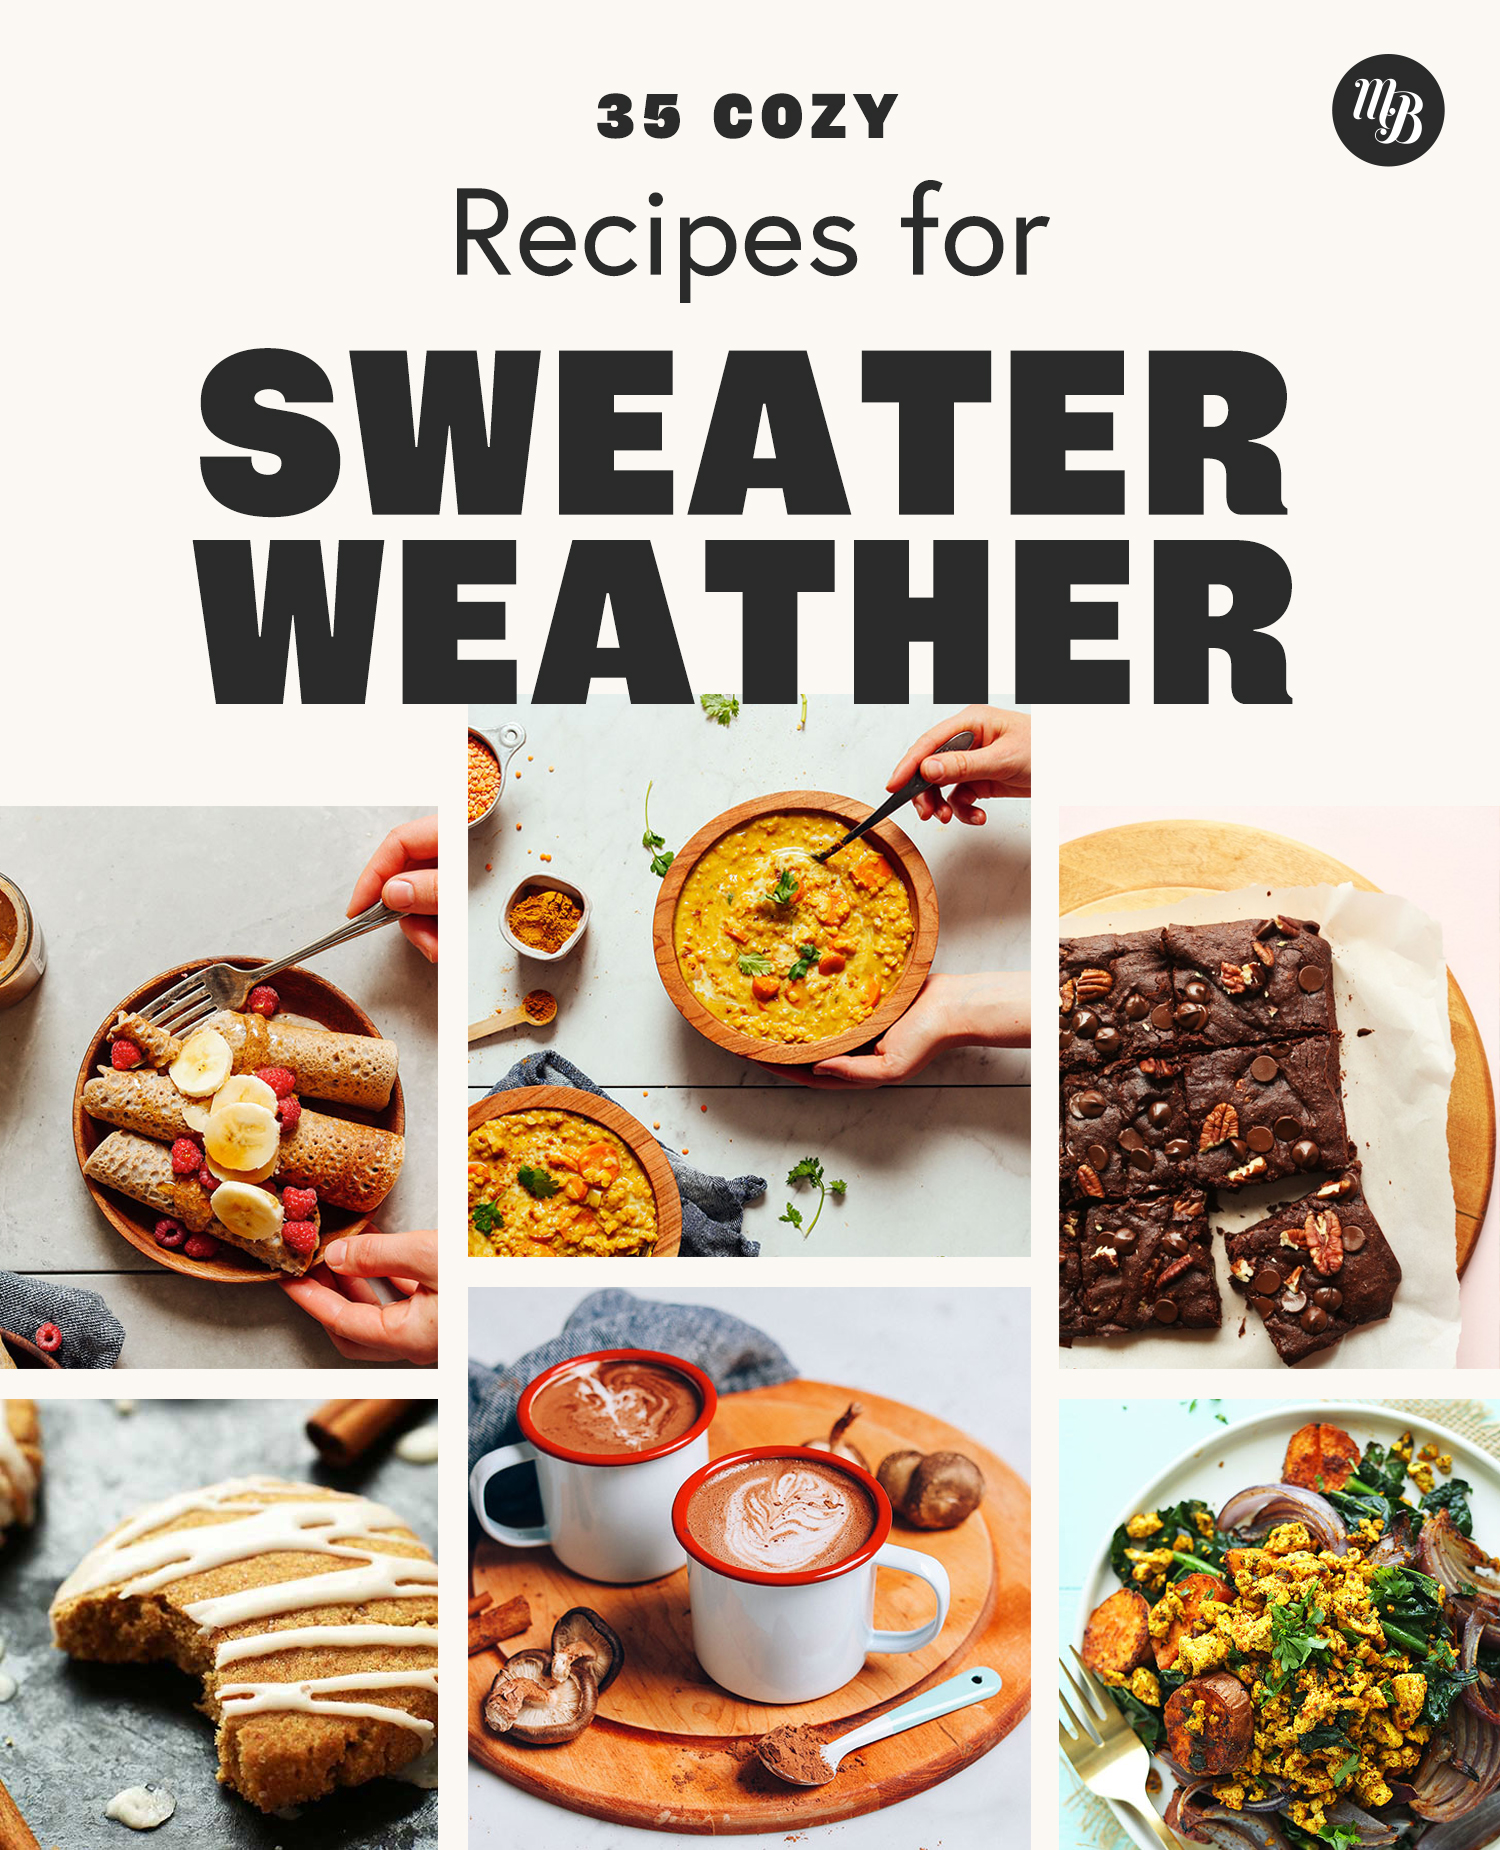 Soup, brownies, hot chocolate, and more plant-based sweater weather recipes